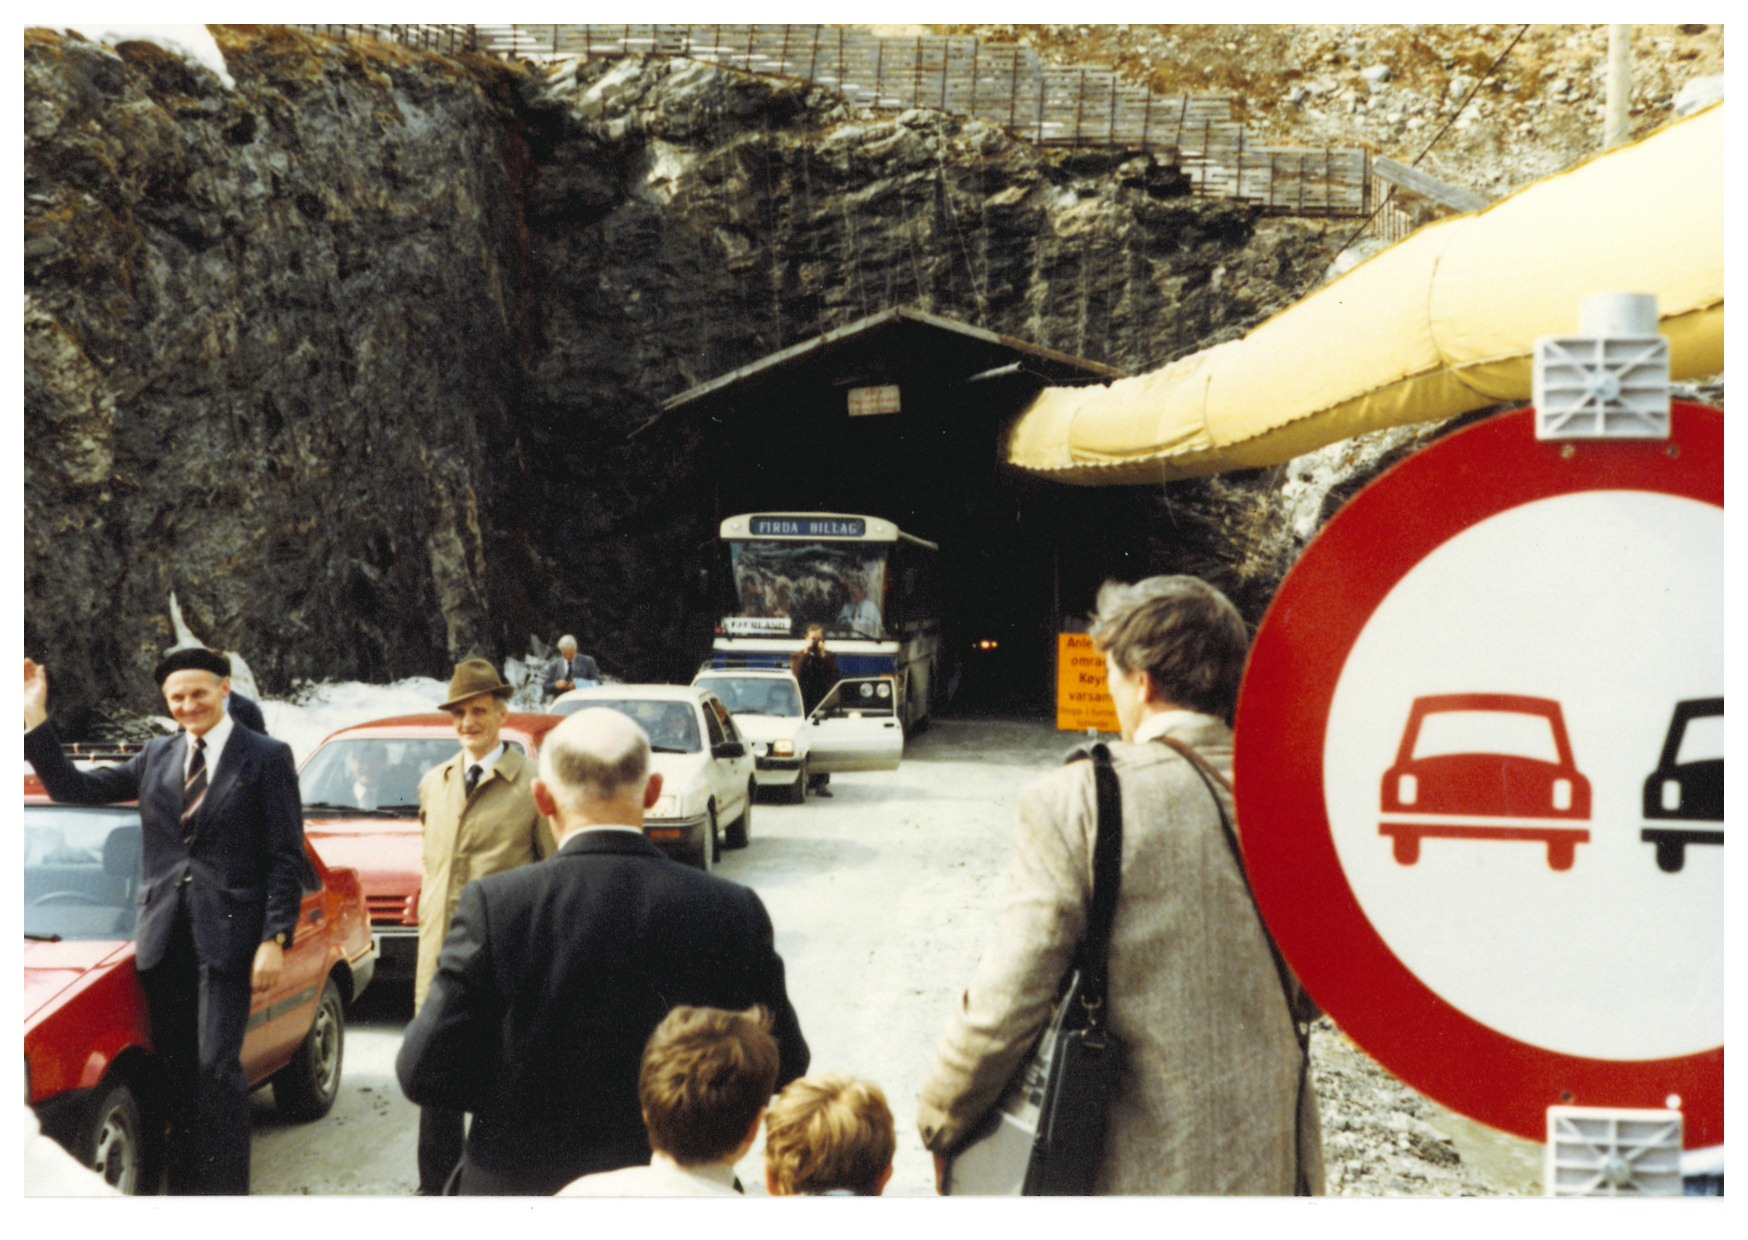 The tunnel to Jølster opened in 1986. Photo: Anders J. Bøyum.